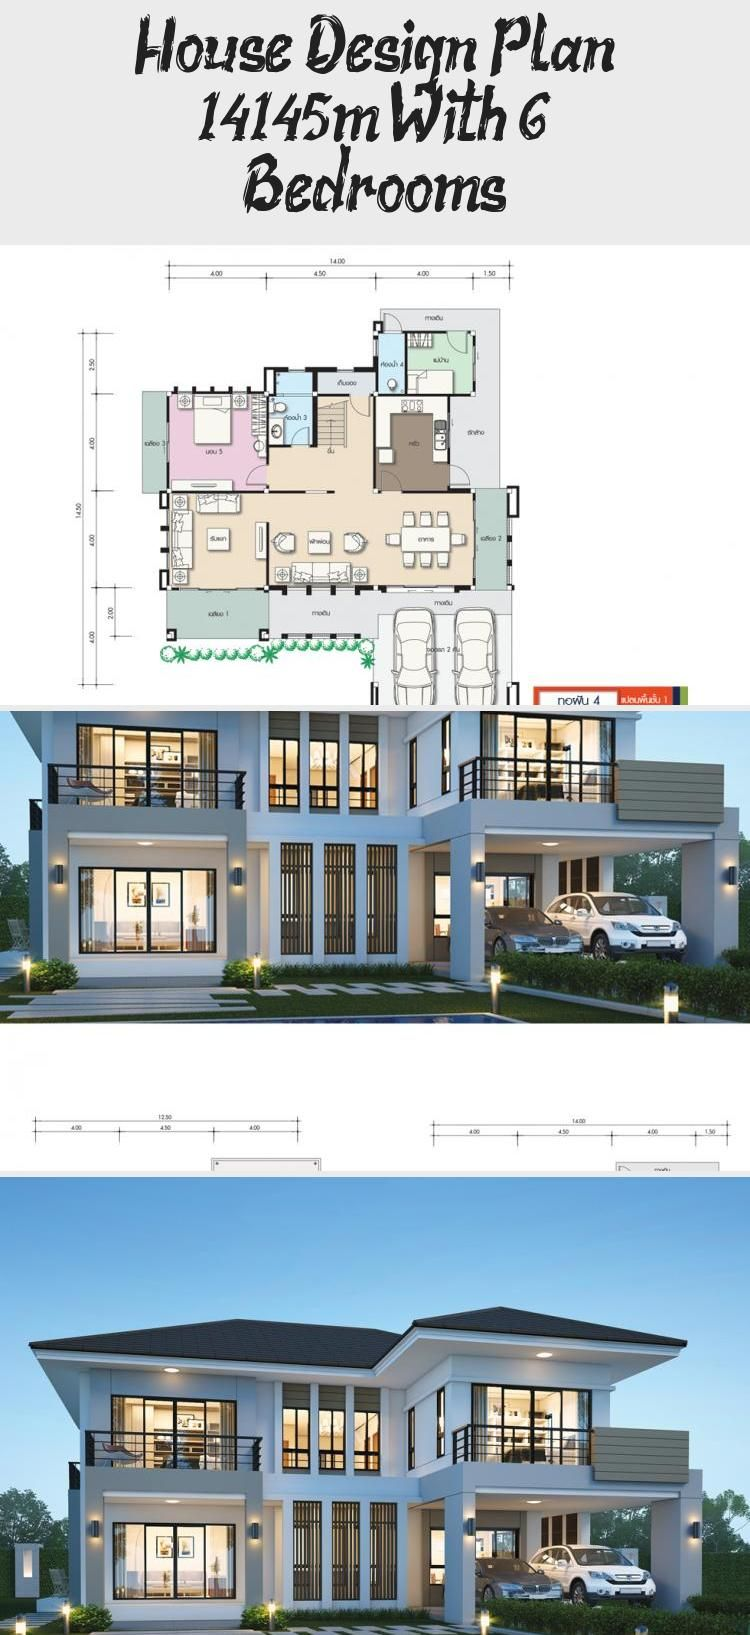 House Design Plan 14x14 5m With 6 Bedrooms Home Design With Plansearch Houseplanswithwraparoundporch H In 2020 Beach House Plans Home Design Plans Sims House Plans